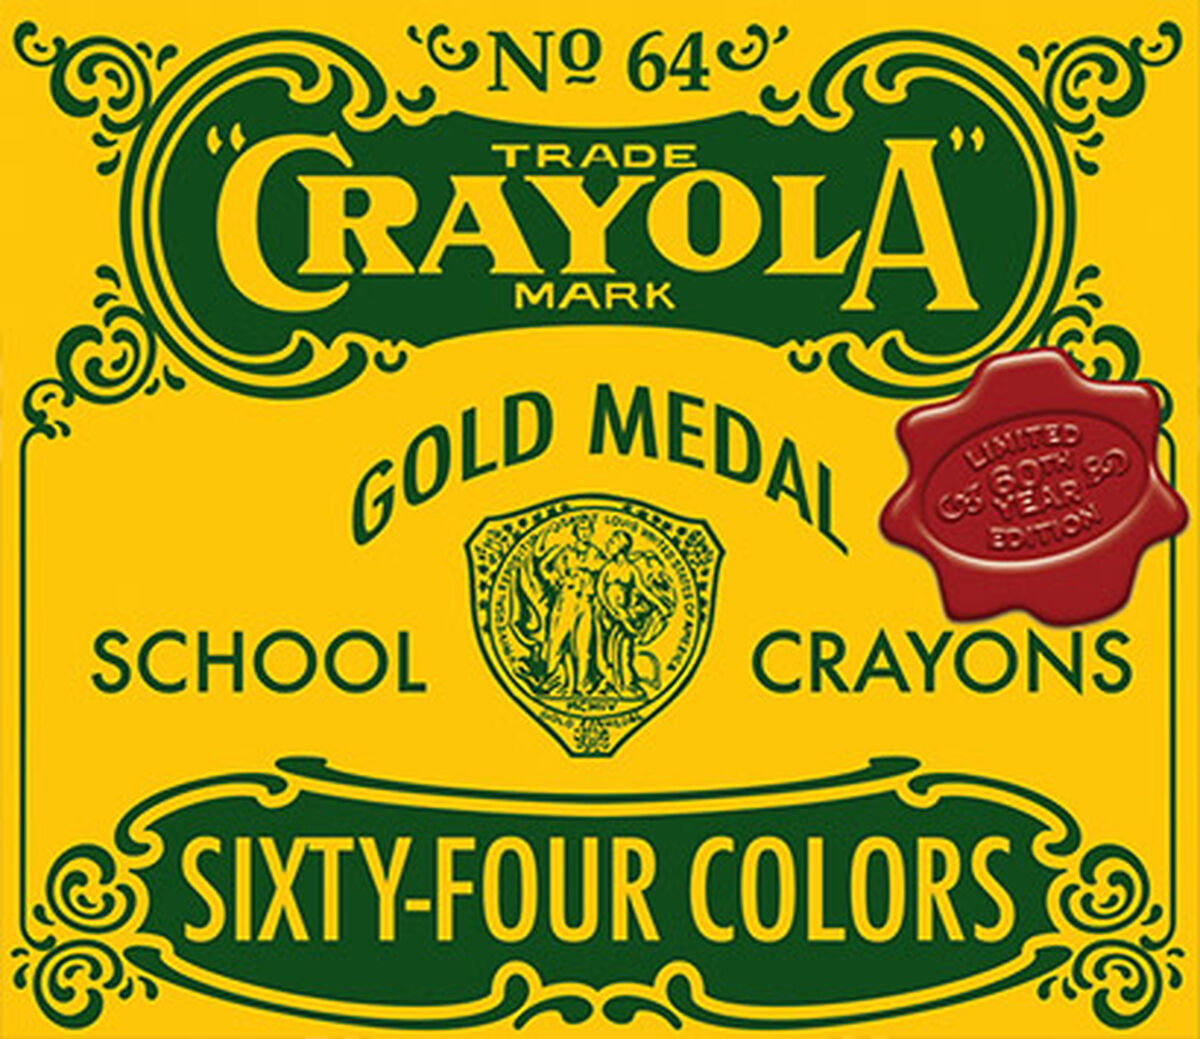 The Crayola Nostalgic Custom 64 Crayon Box